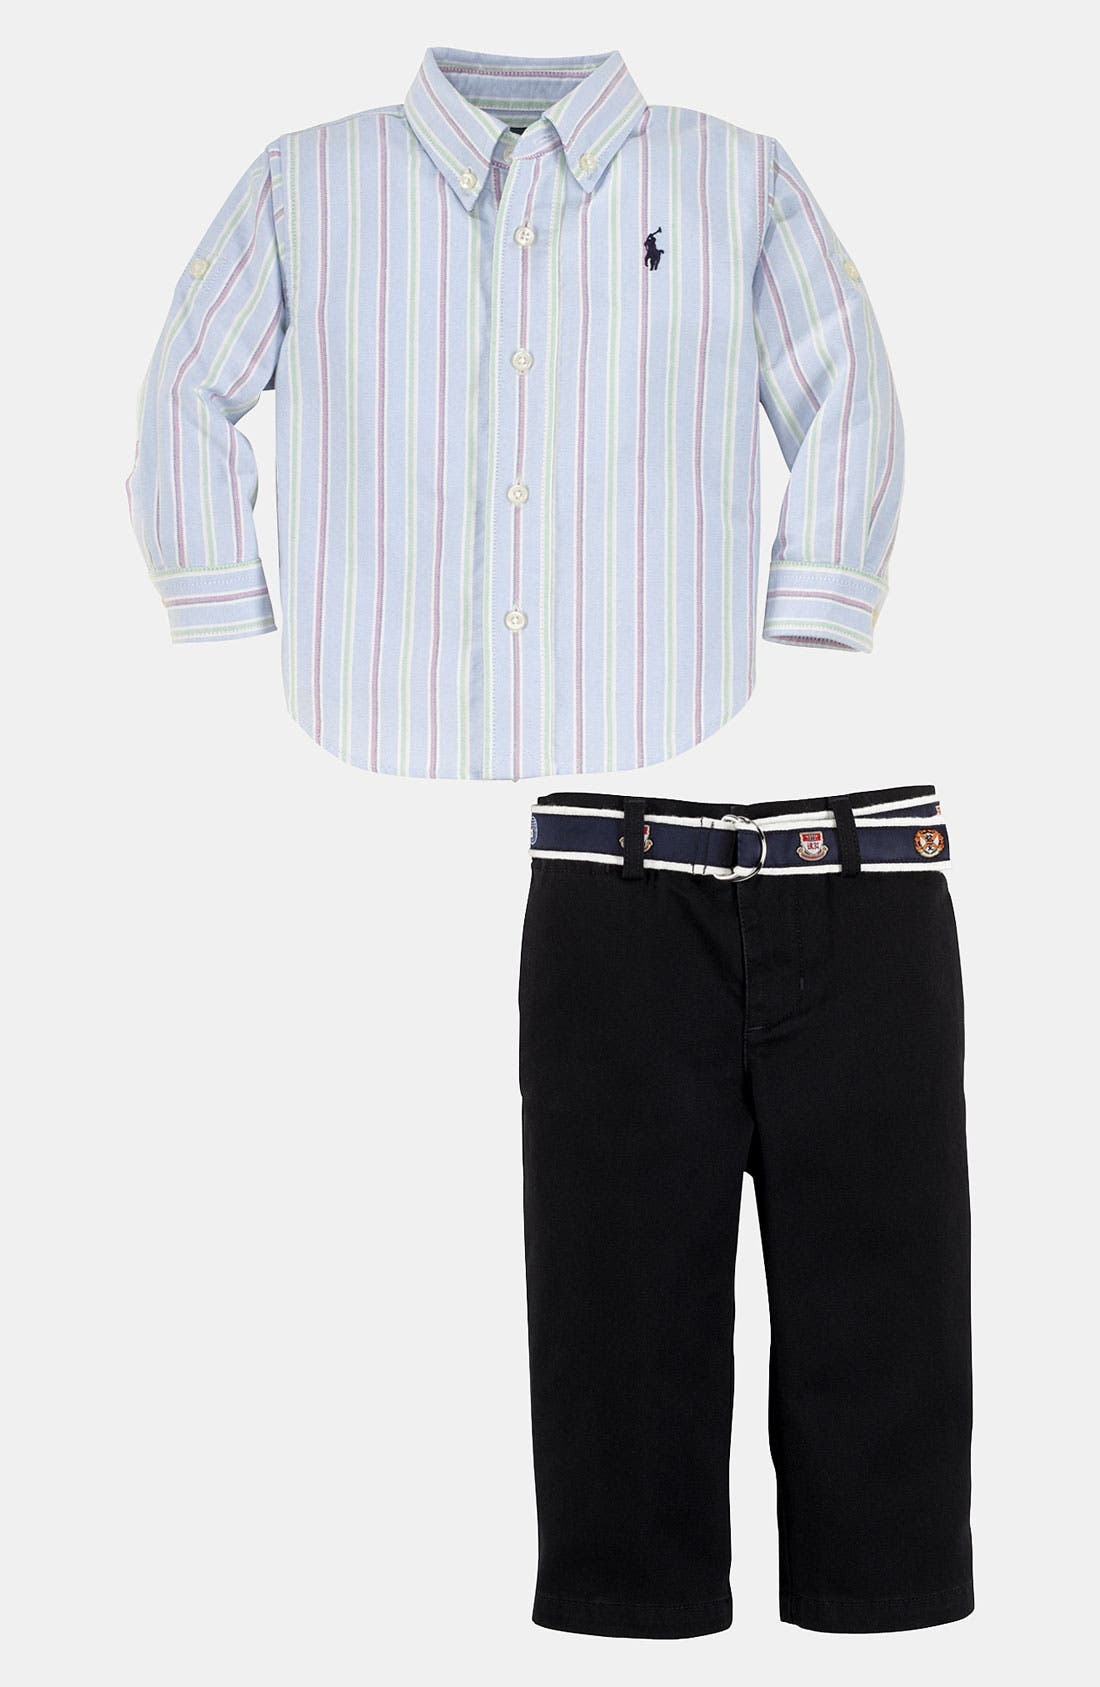 Alternate Image 2  - Ralph Lauren Stripe Shirt & Pants (Infant)